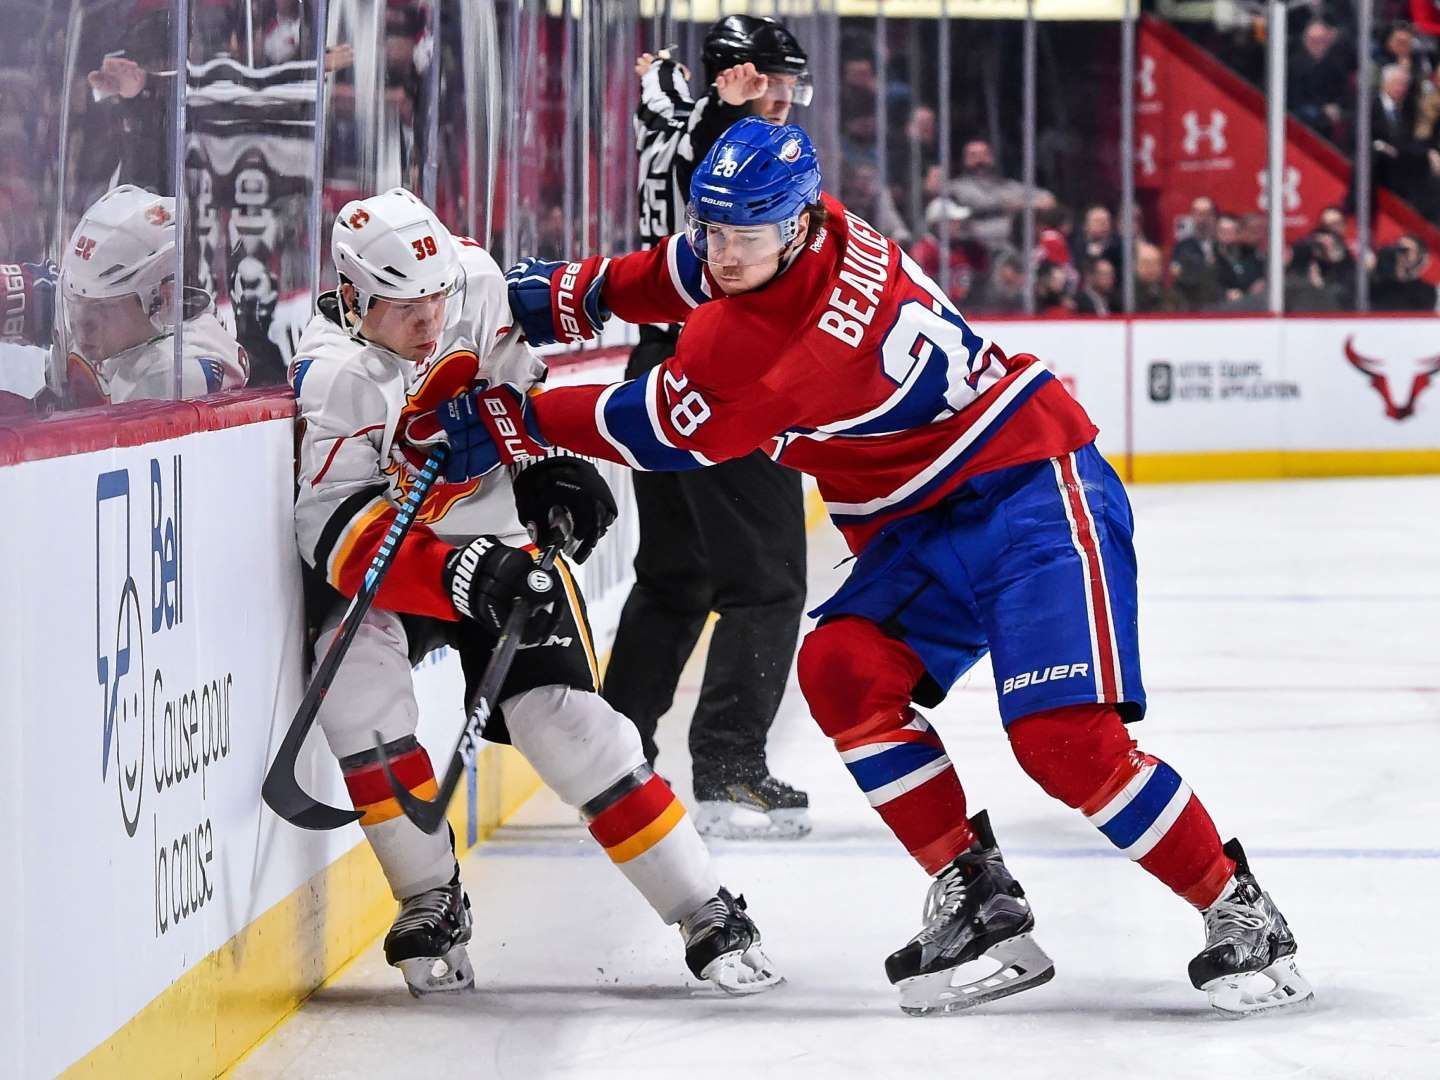 Getting board:   Nathan Beaulieu, right, of the Montreal Canadiens pins Alex Chiasson of the Calgary Flames against the boards on Jan. 24 at the Bell Centre in Montreal. The Canadiens won 5‐1.